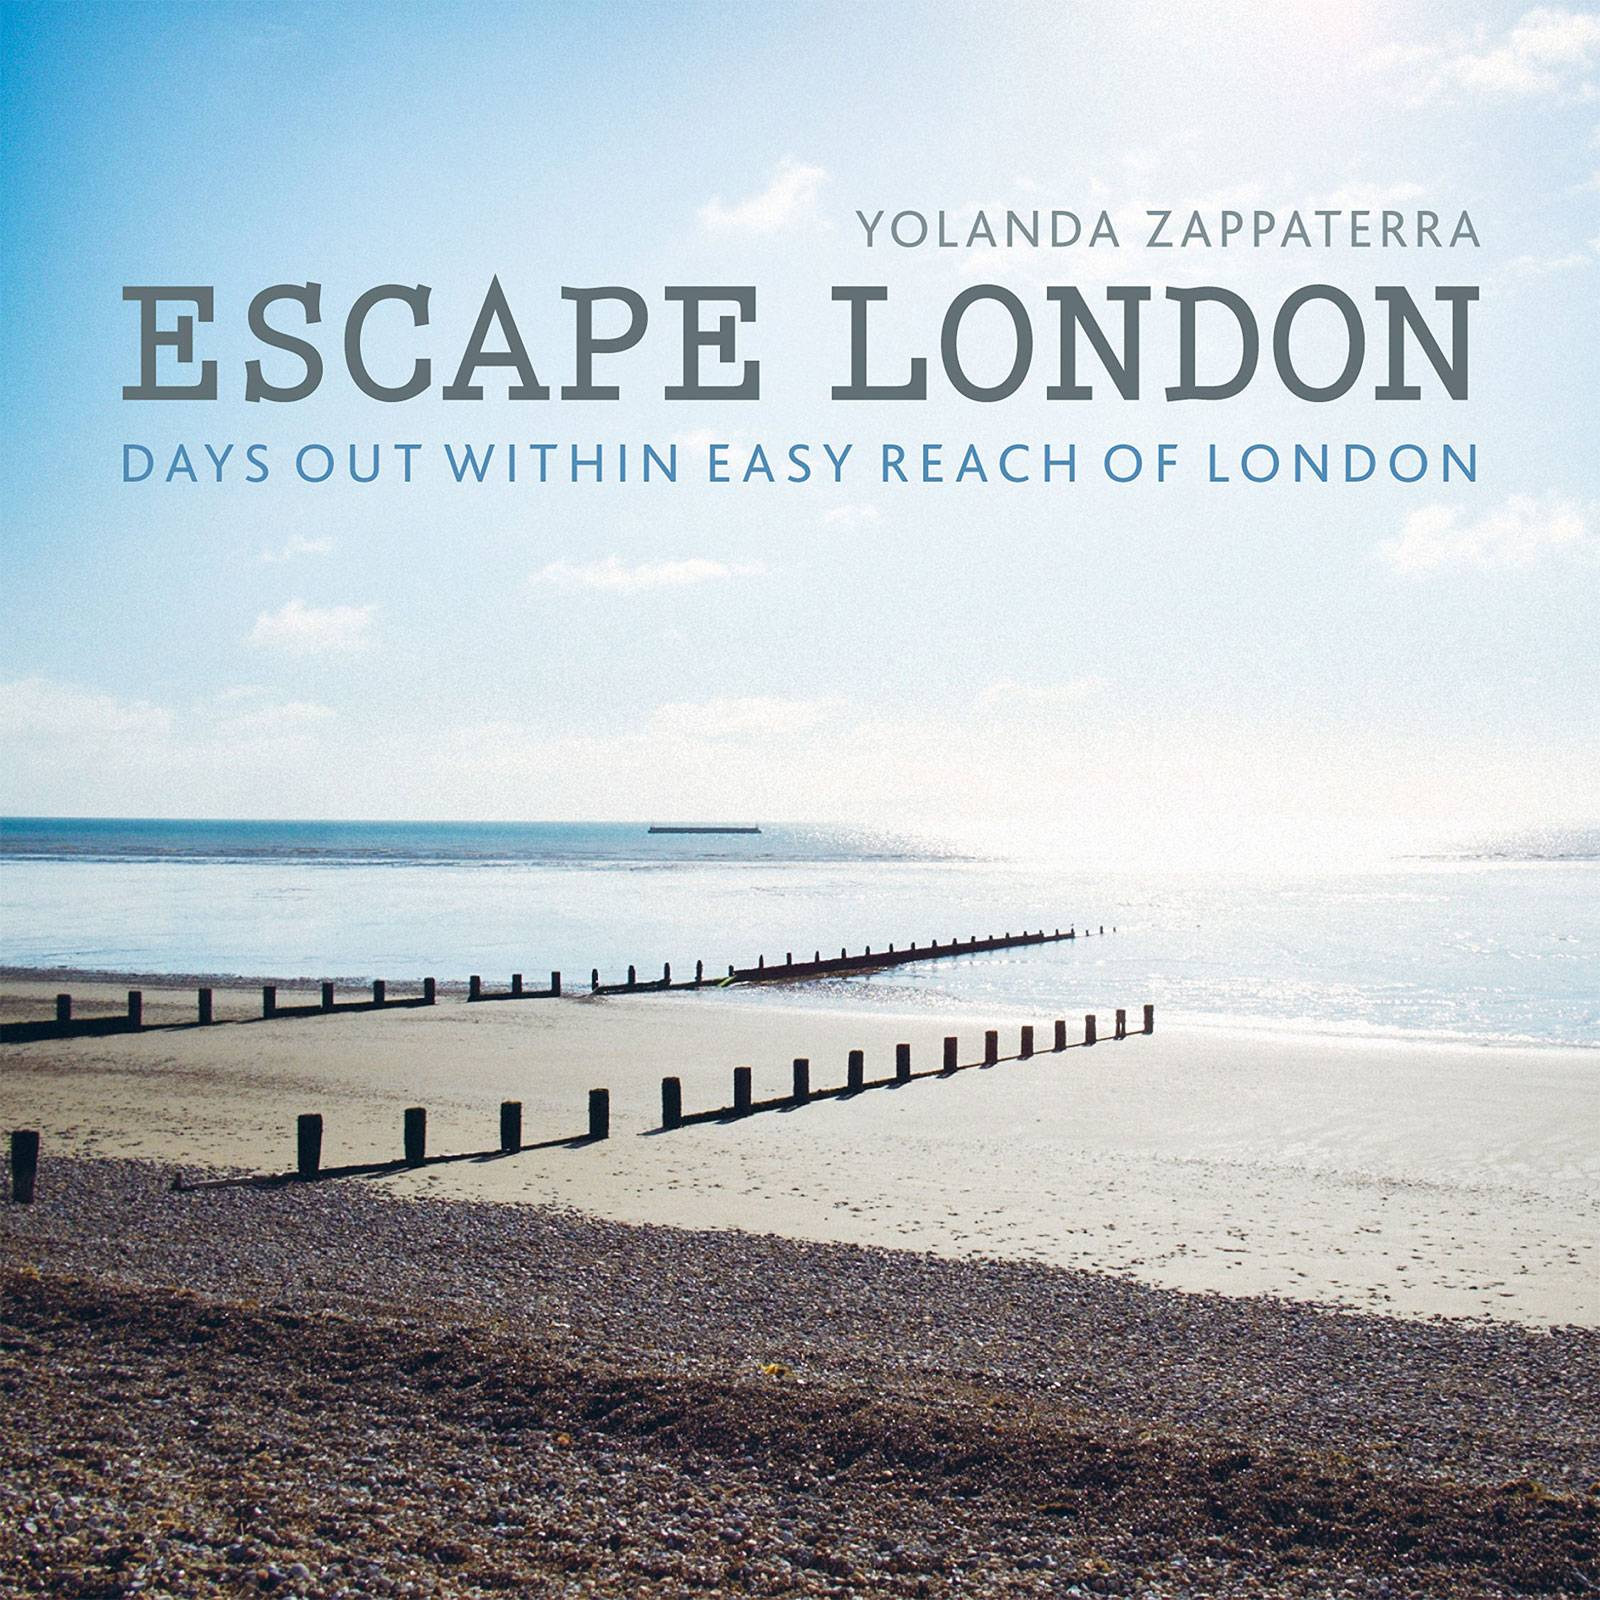 Escape London - Paperback Book thumbnails